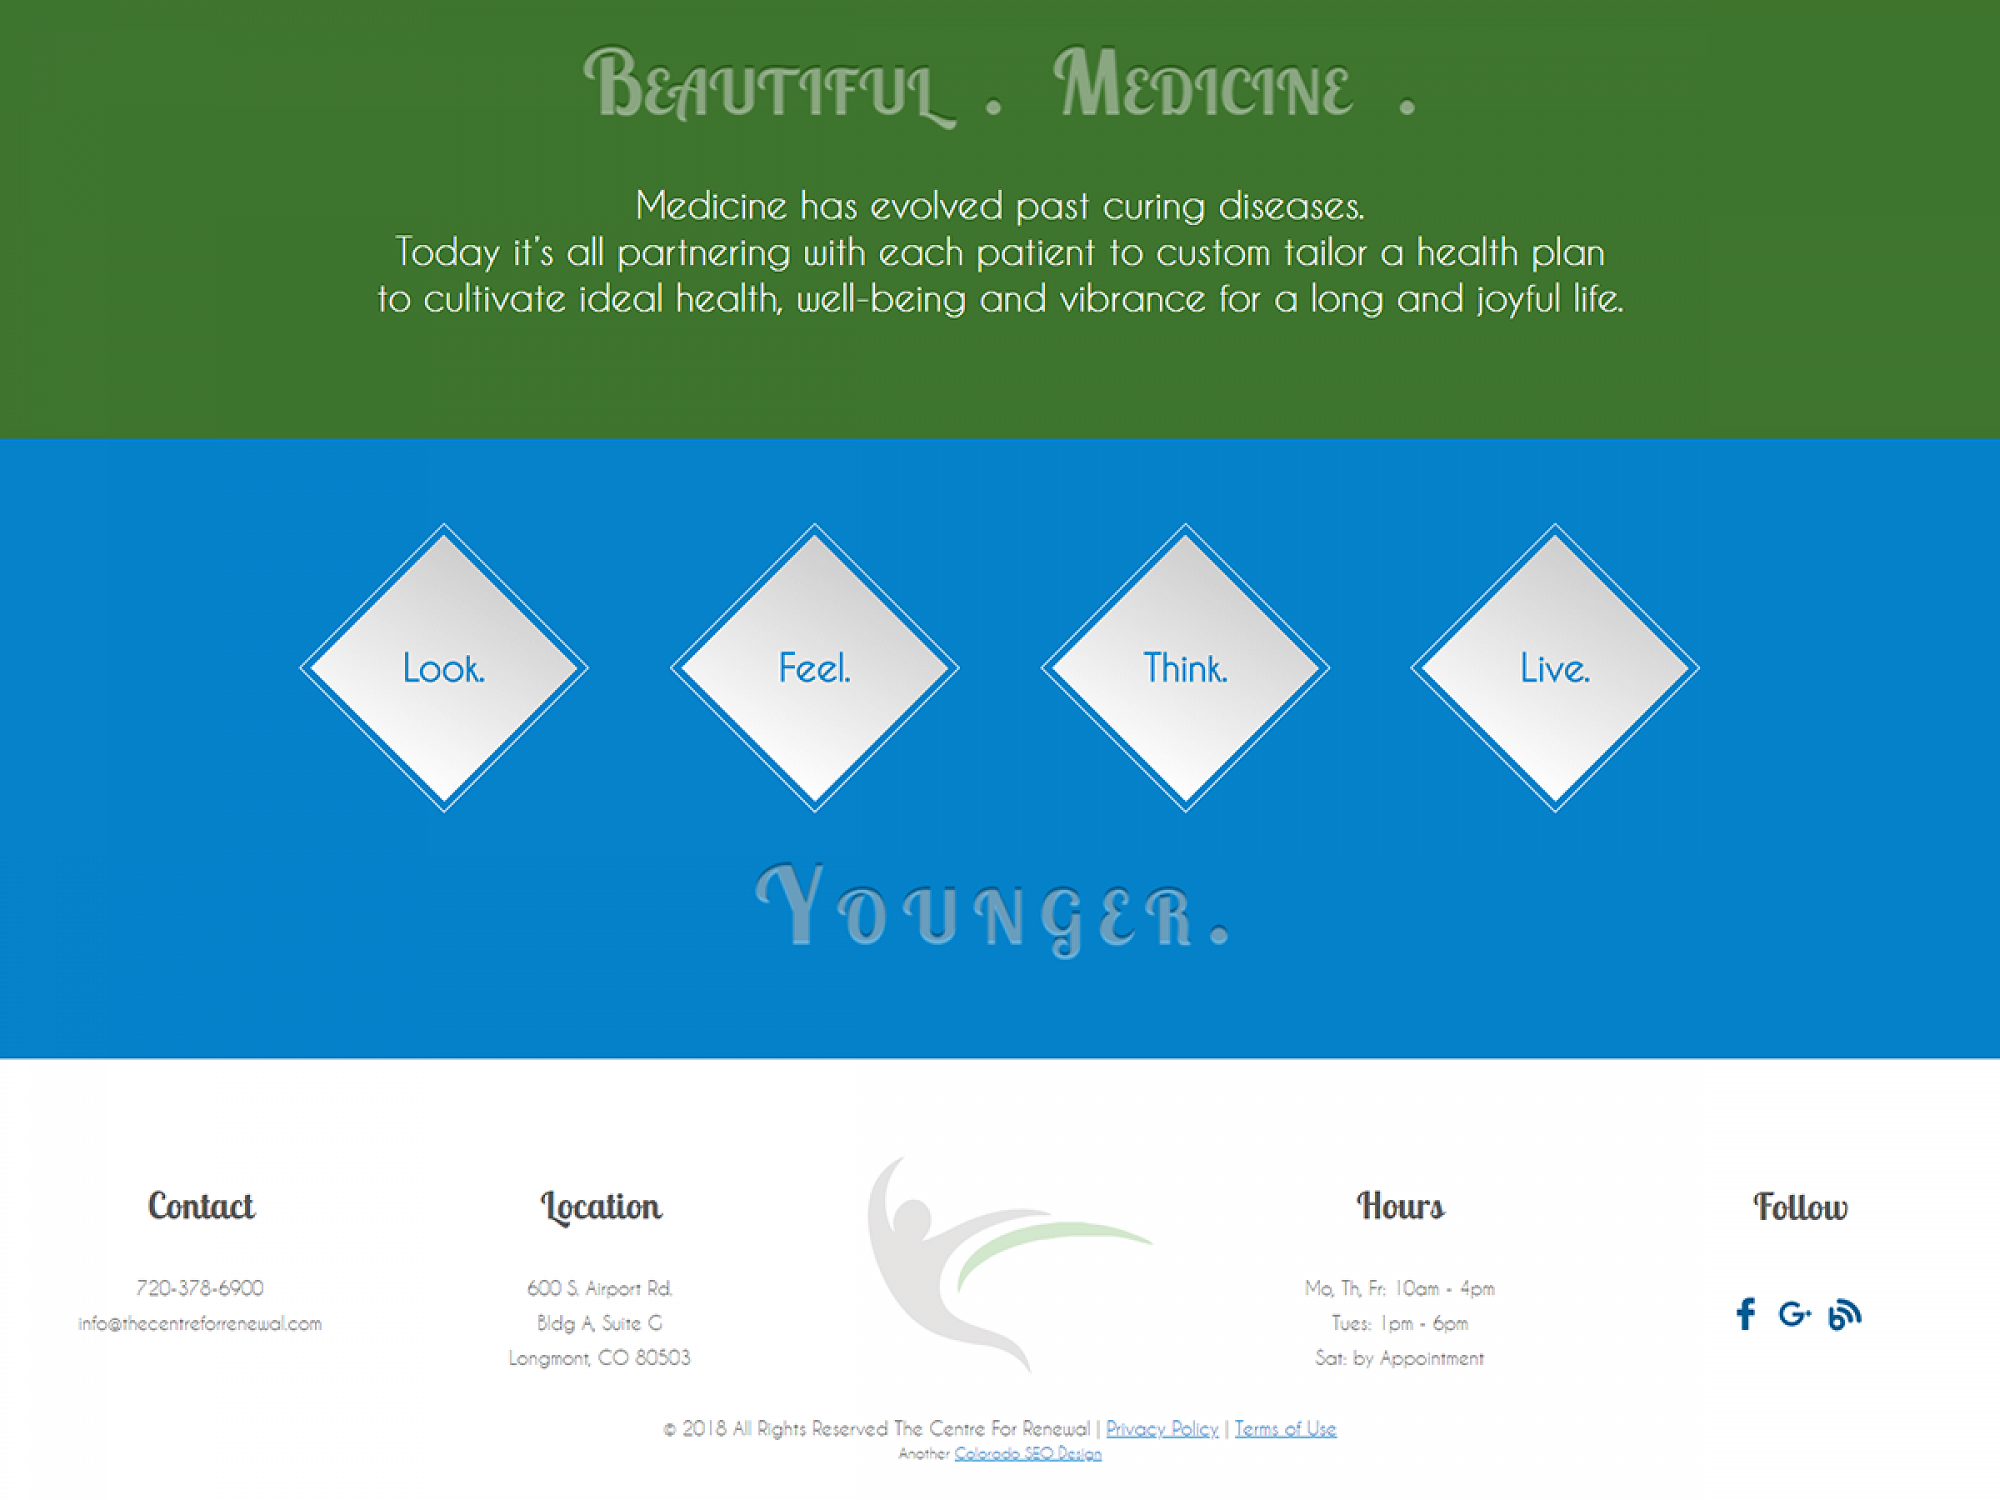 Centre For Renewal Supplement & Footer - Web Design